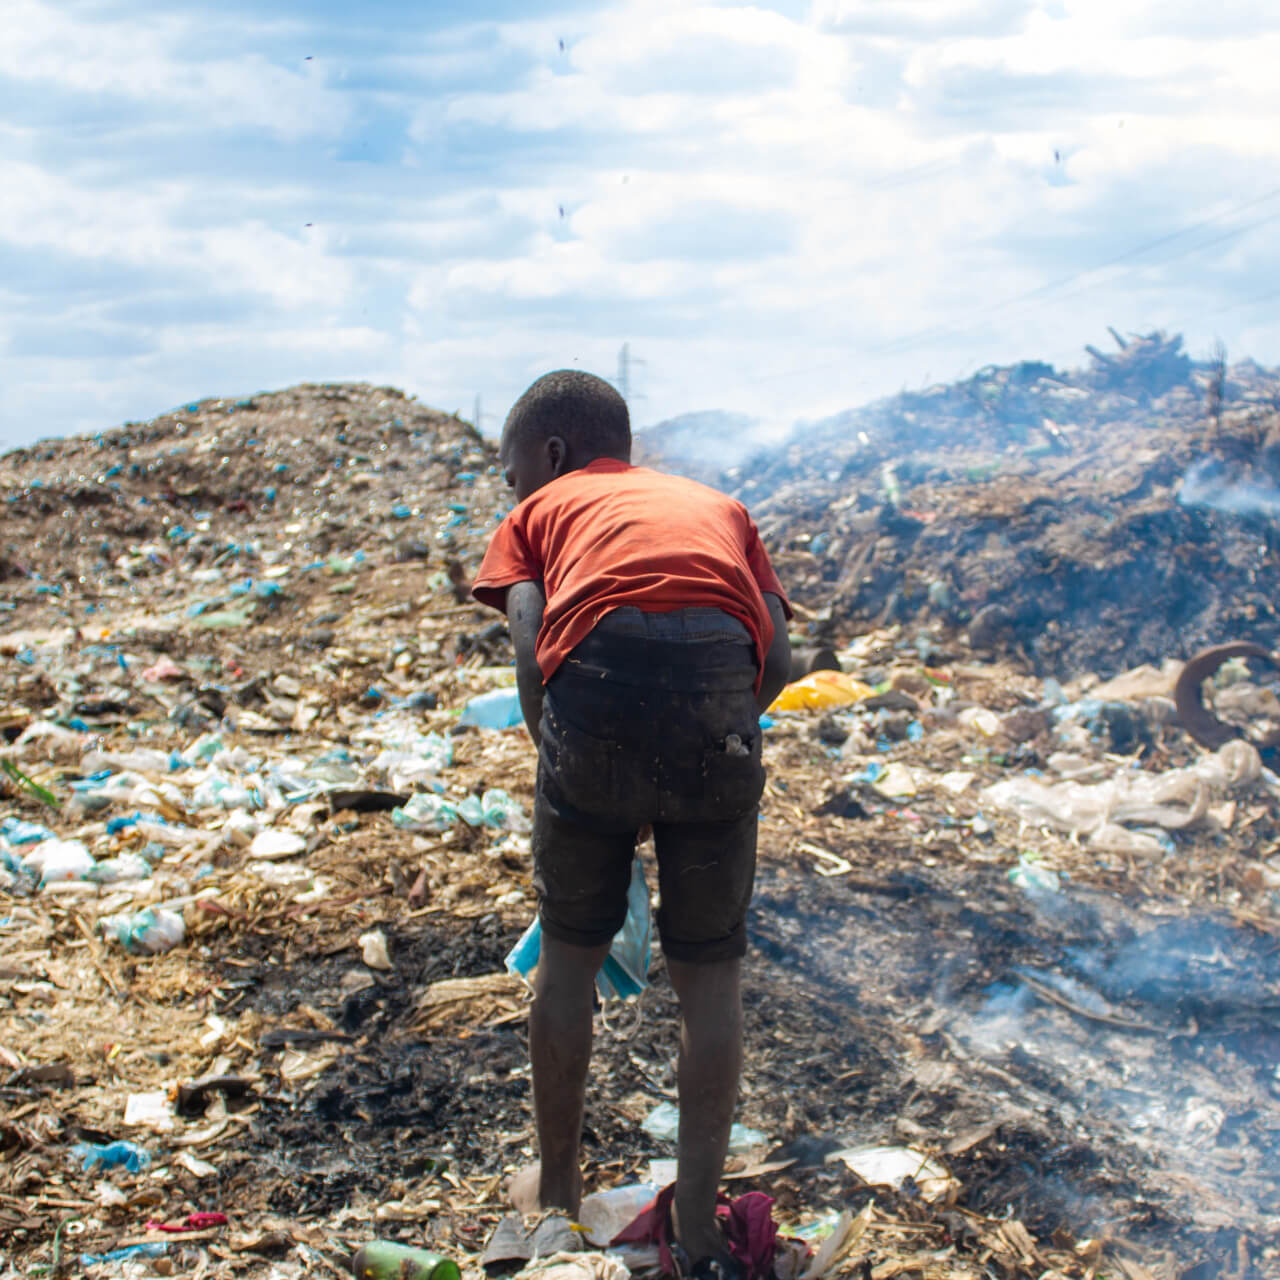 Minors scavenging from dumpsites in Malawi have no protection